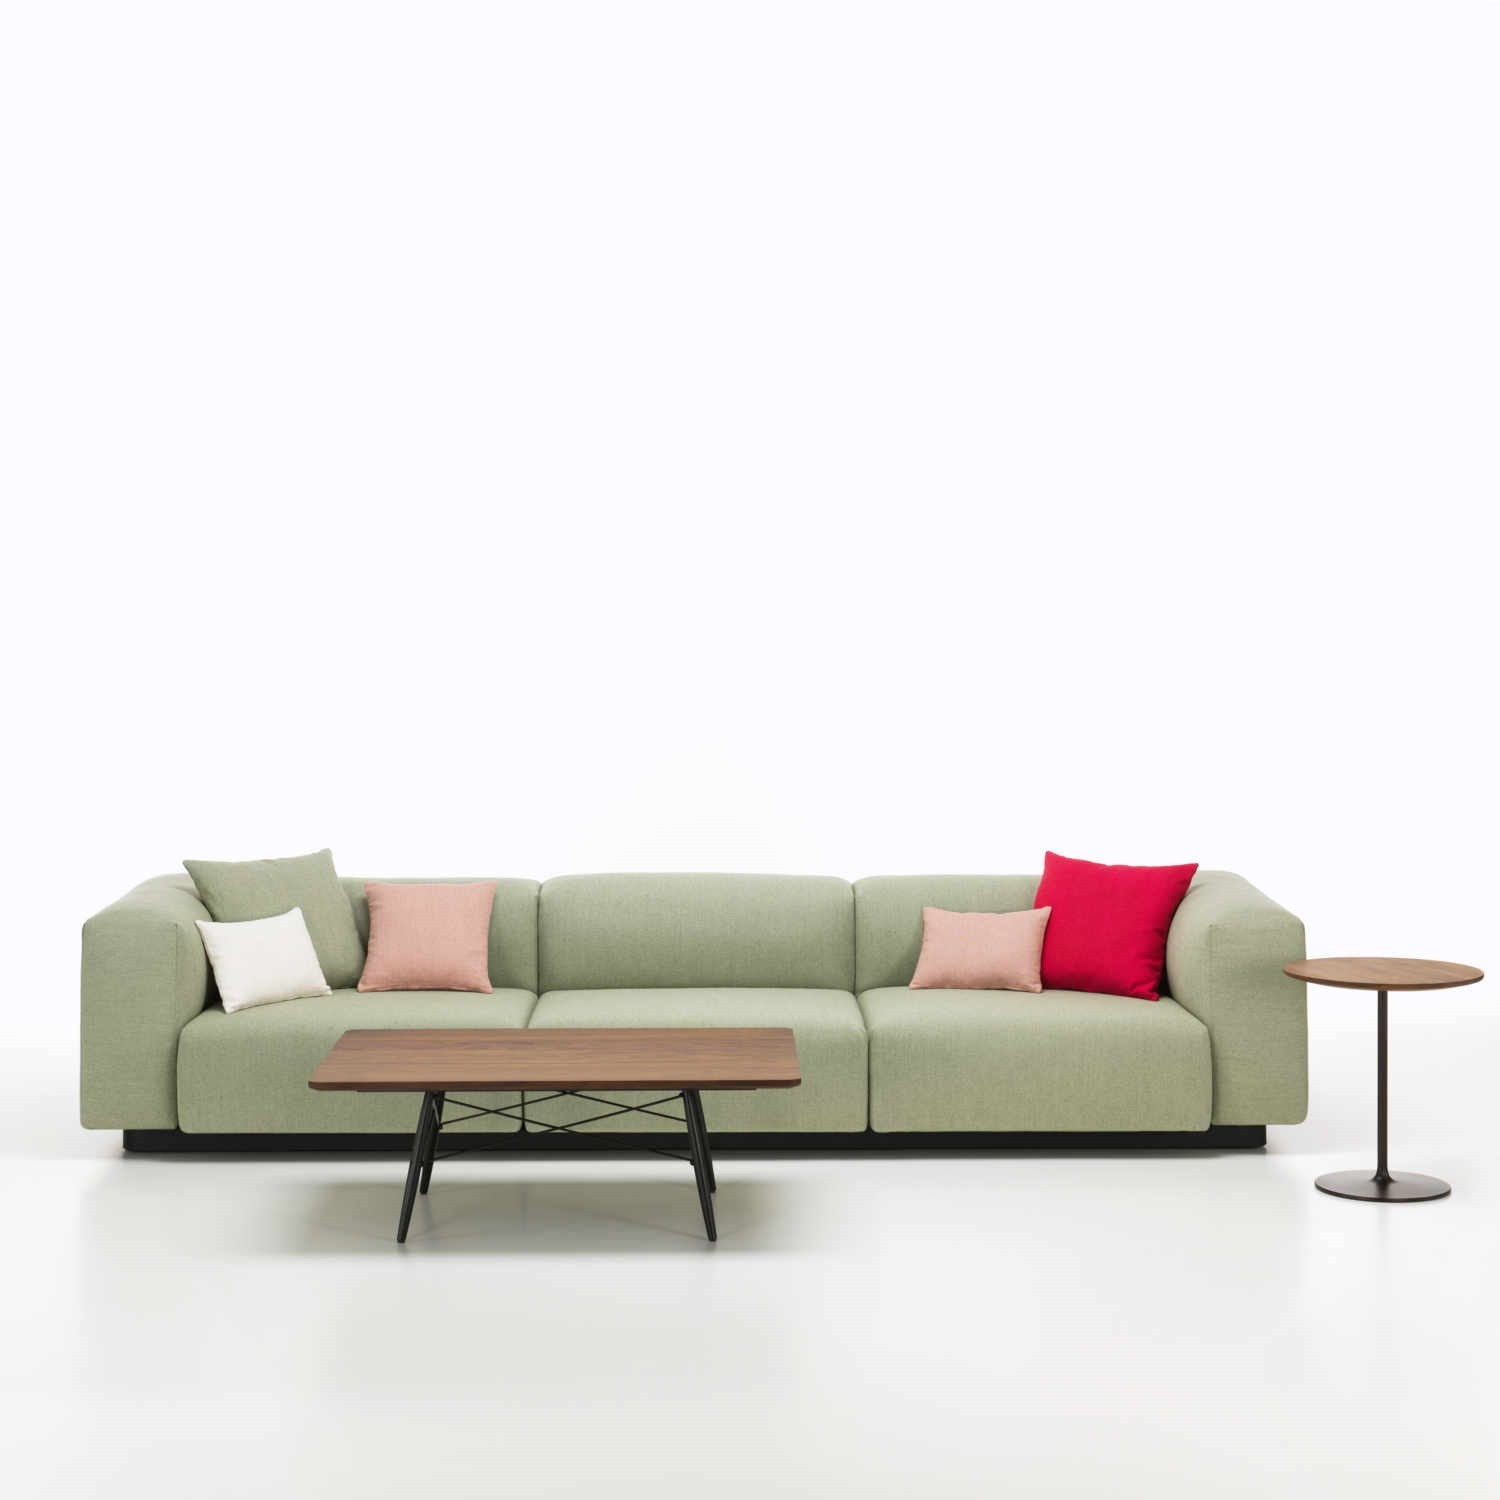 Vitra soft modular 3er sofa exklusive designklassiker vitra soft modular 3er sofa 2021040002 parisarafo Image collections